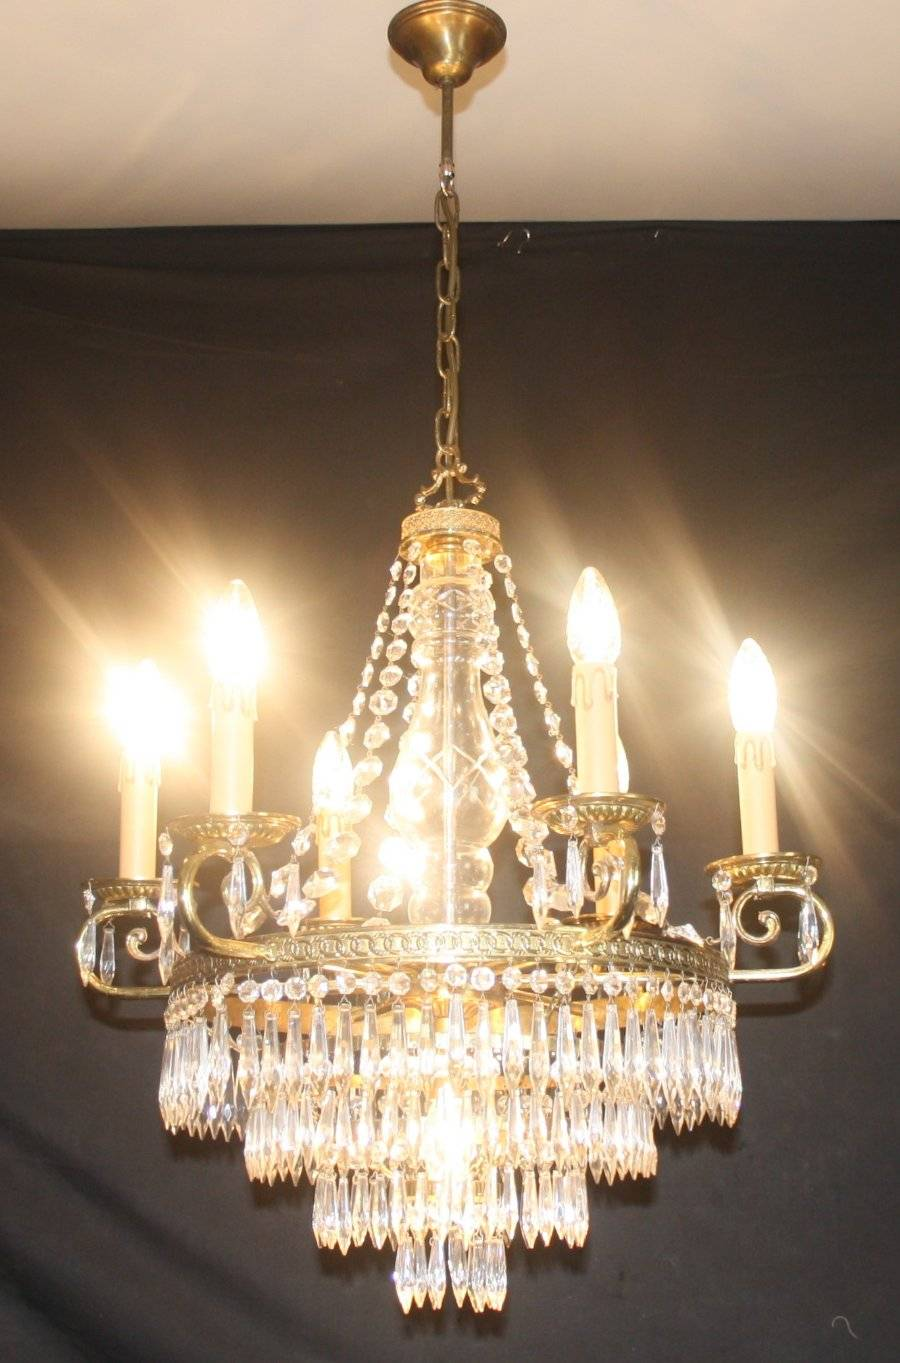 Vintage Empire Chandelier French Glass Tent Waterfall Ceiling